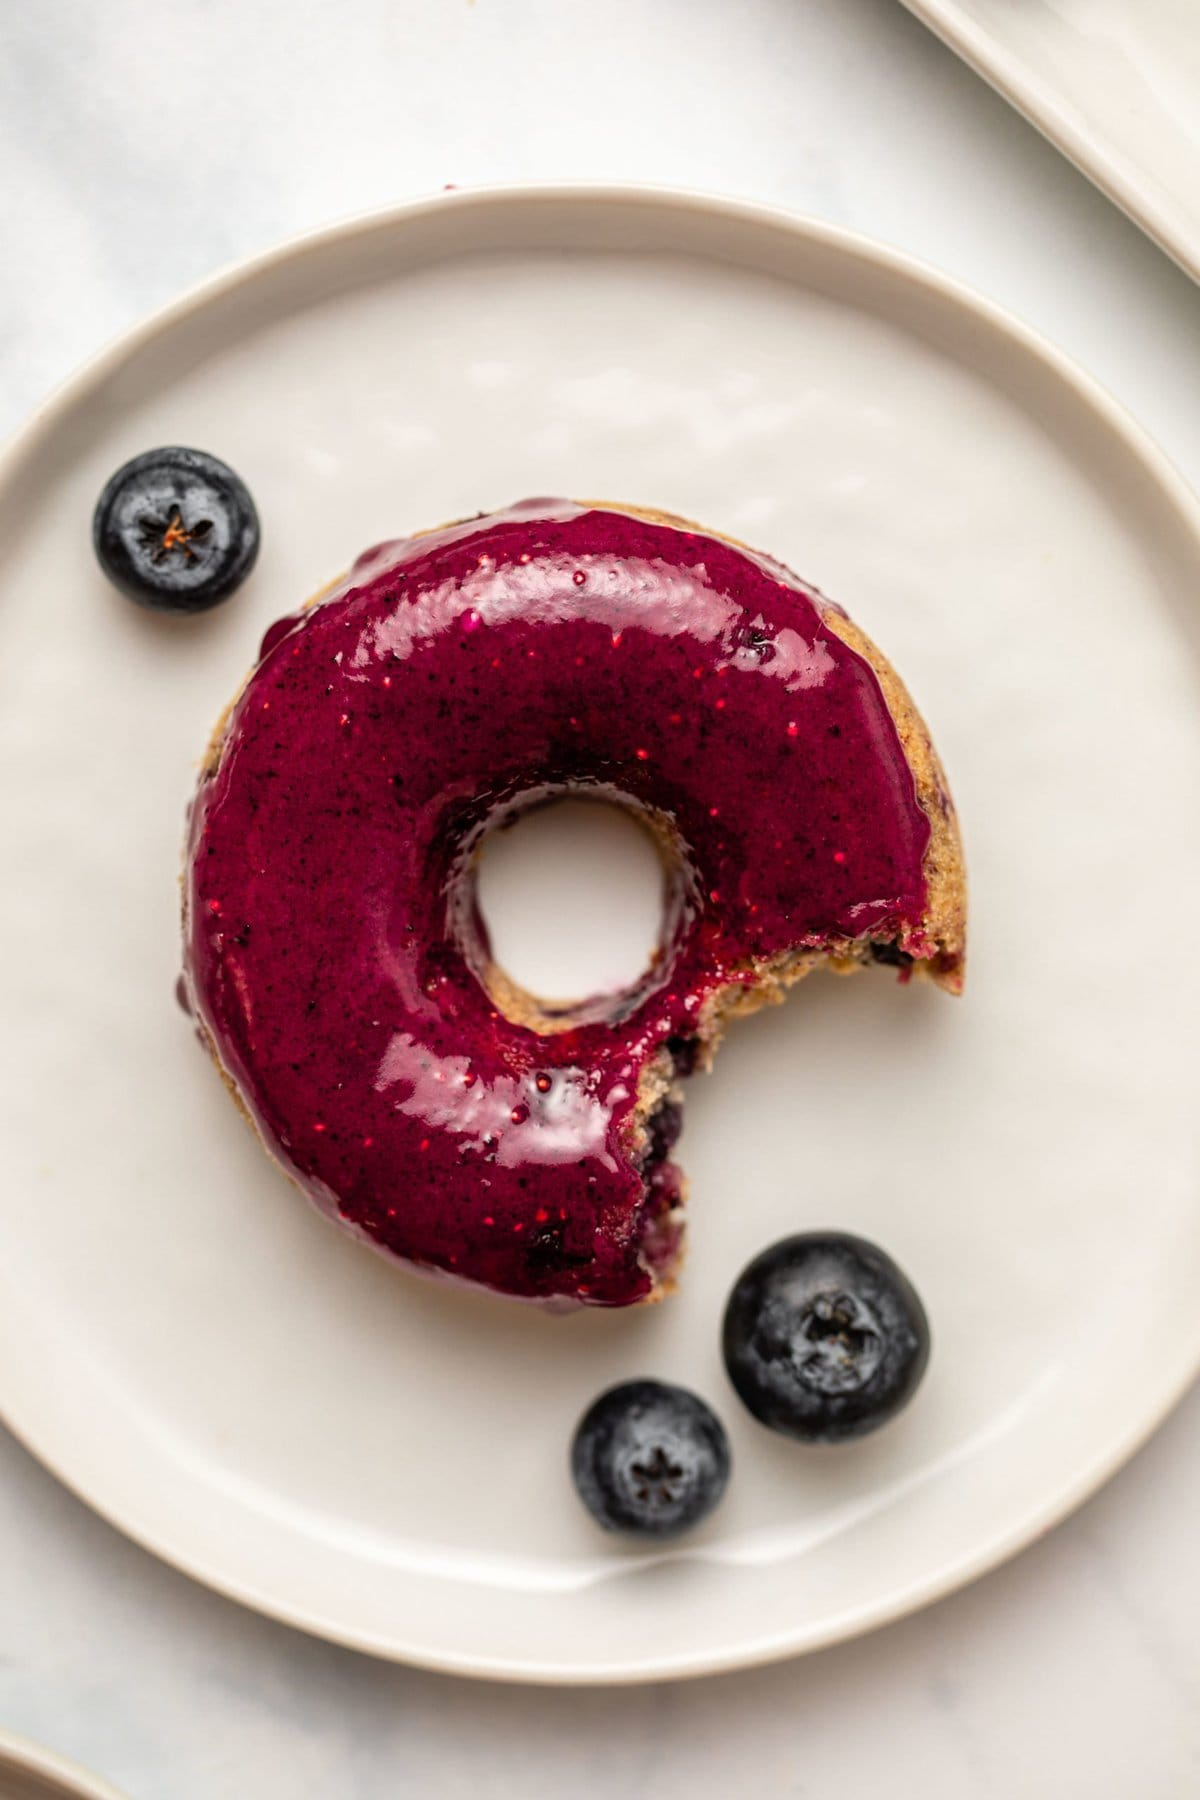 close-up photo of glazed blueberry donut on small white plate with bite taken out of it